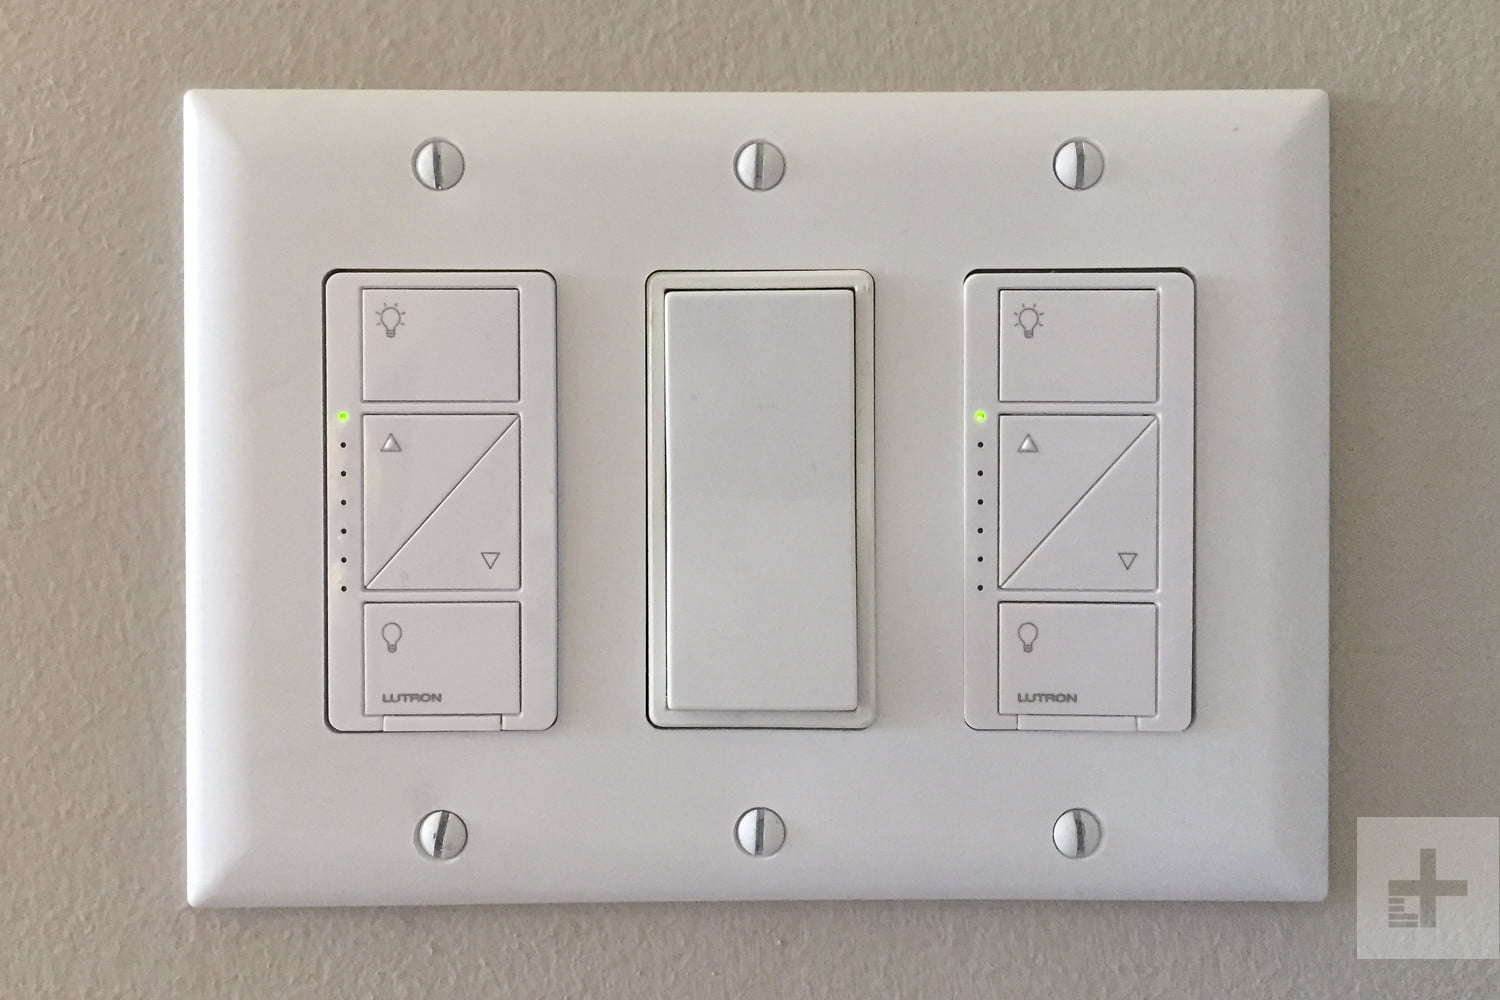 keypad lighting lutron thermostat lutronkeypads pin control and switches light